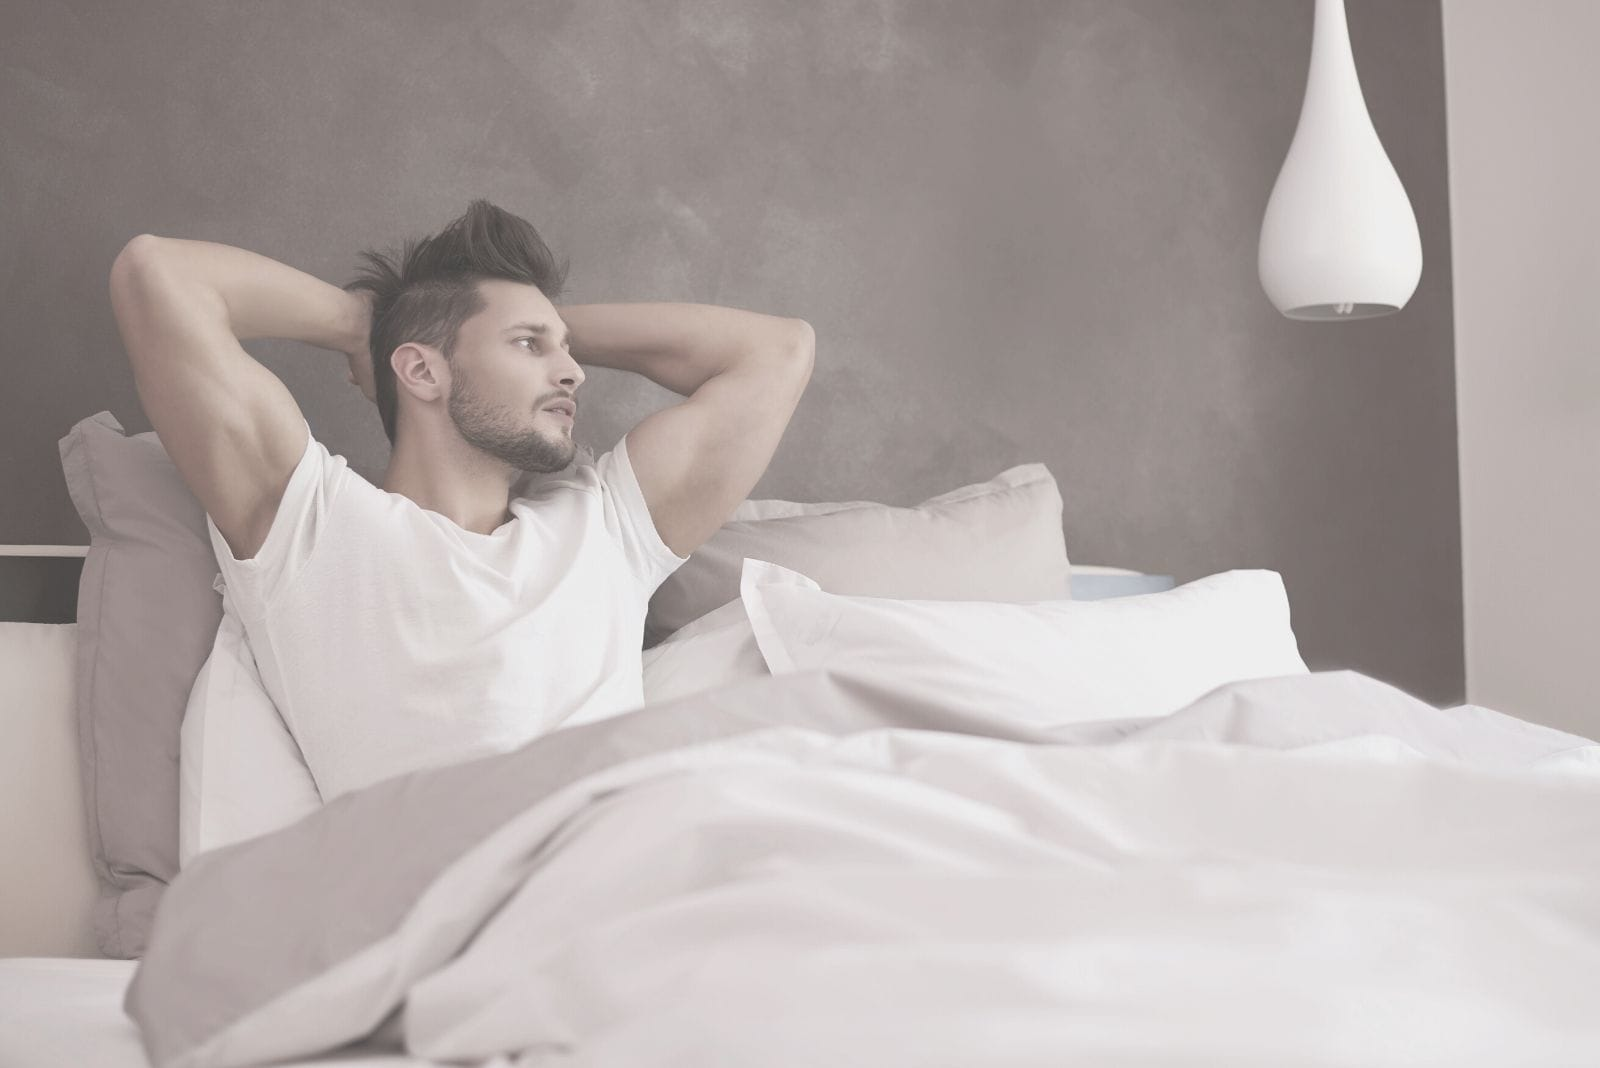 a handsome man in bed thinking deeply placing his hands at the back of his head